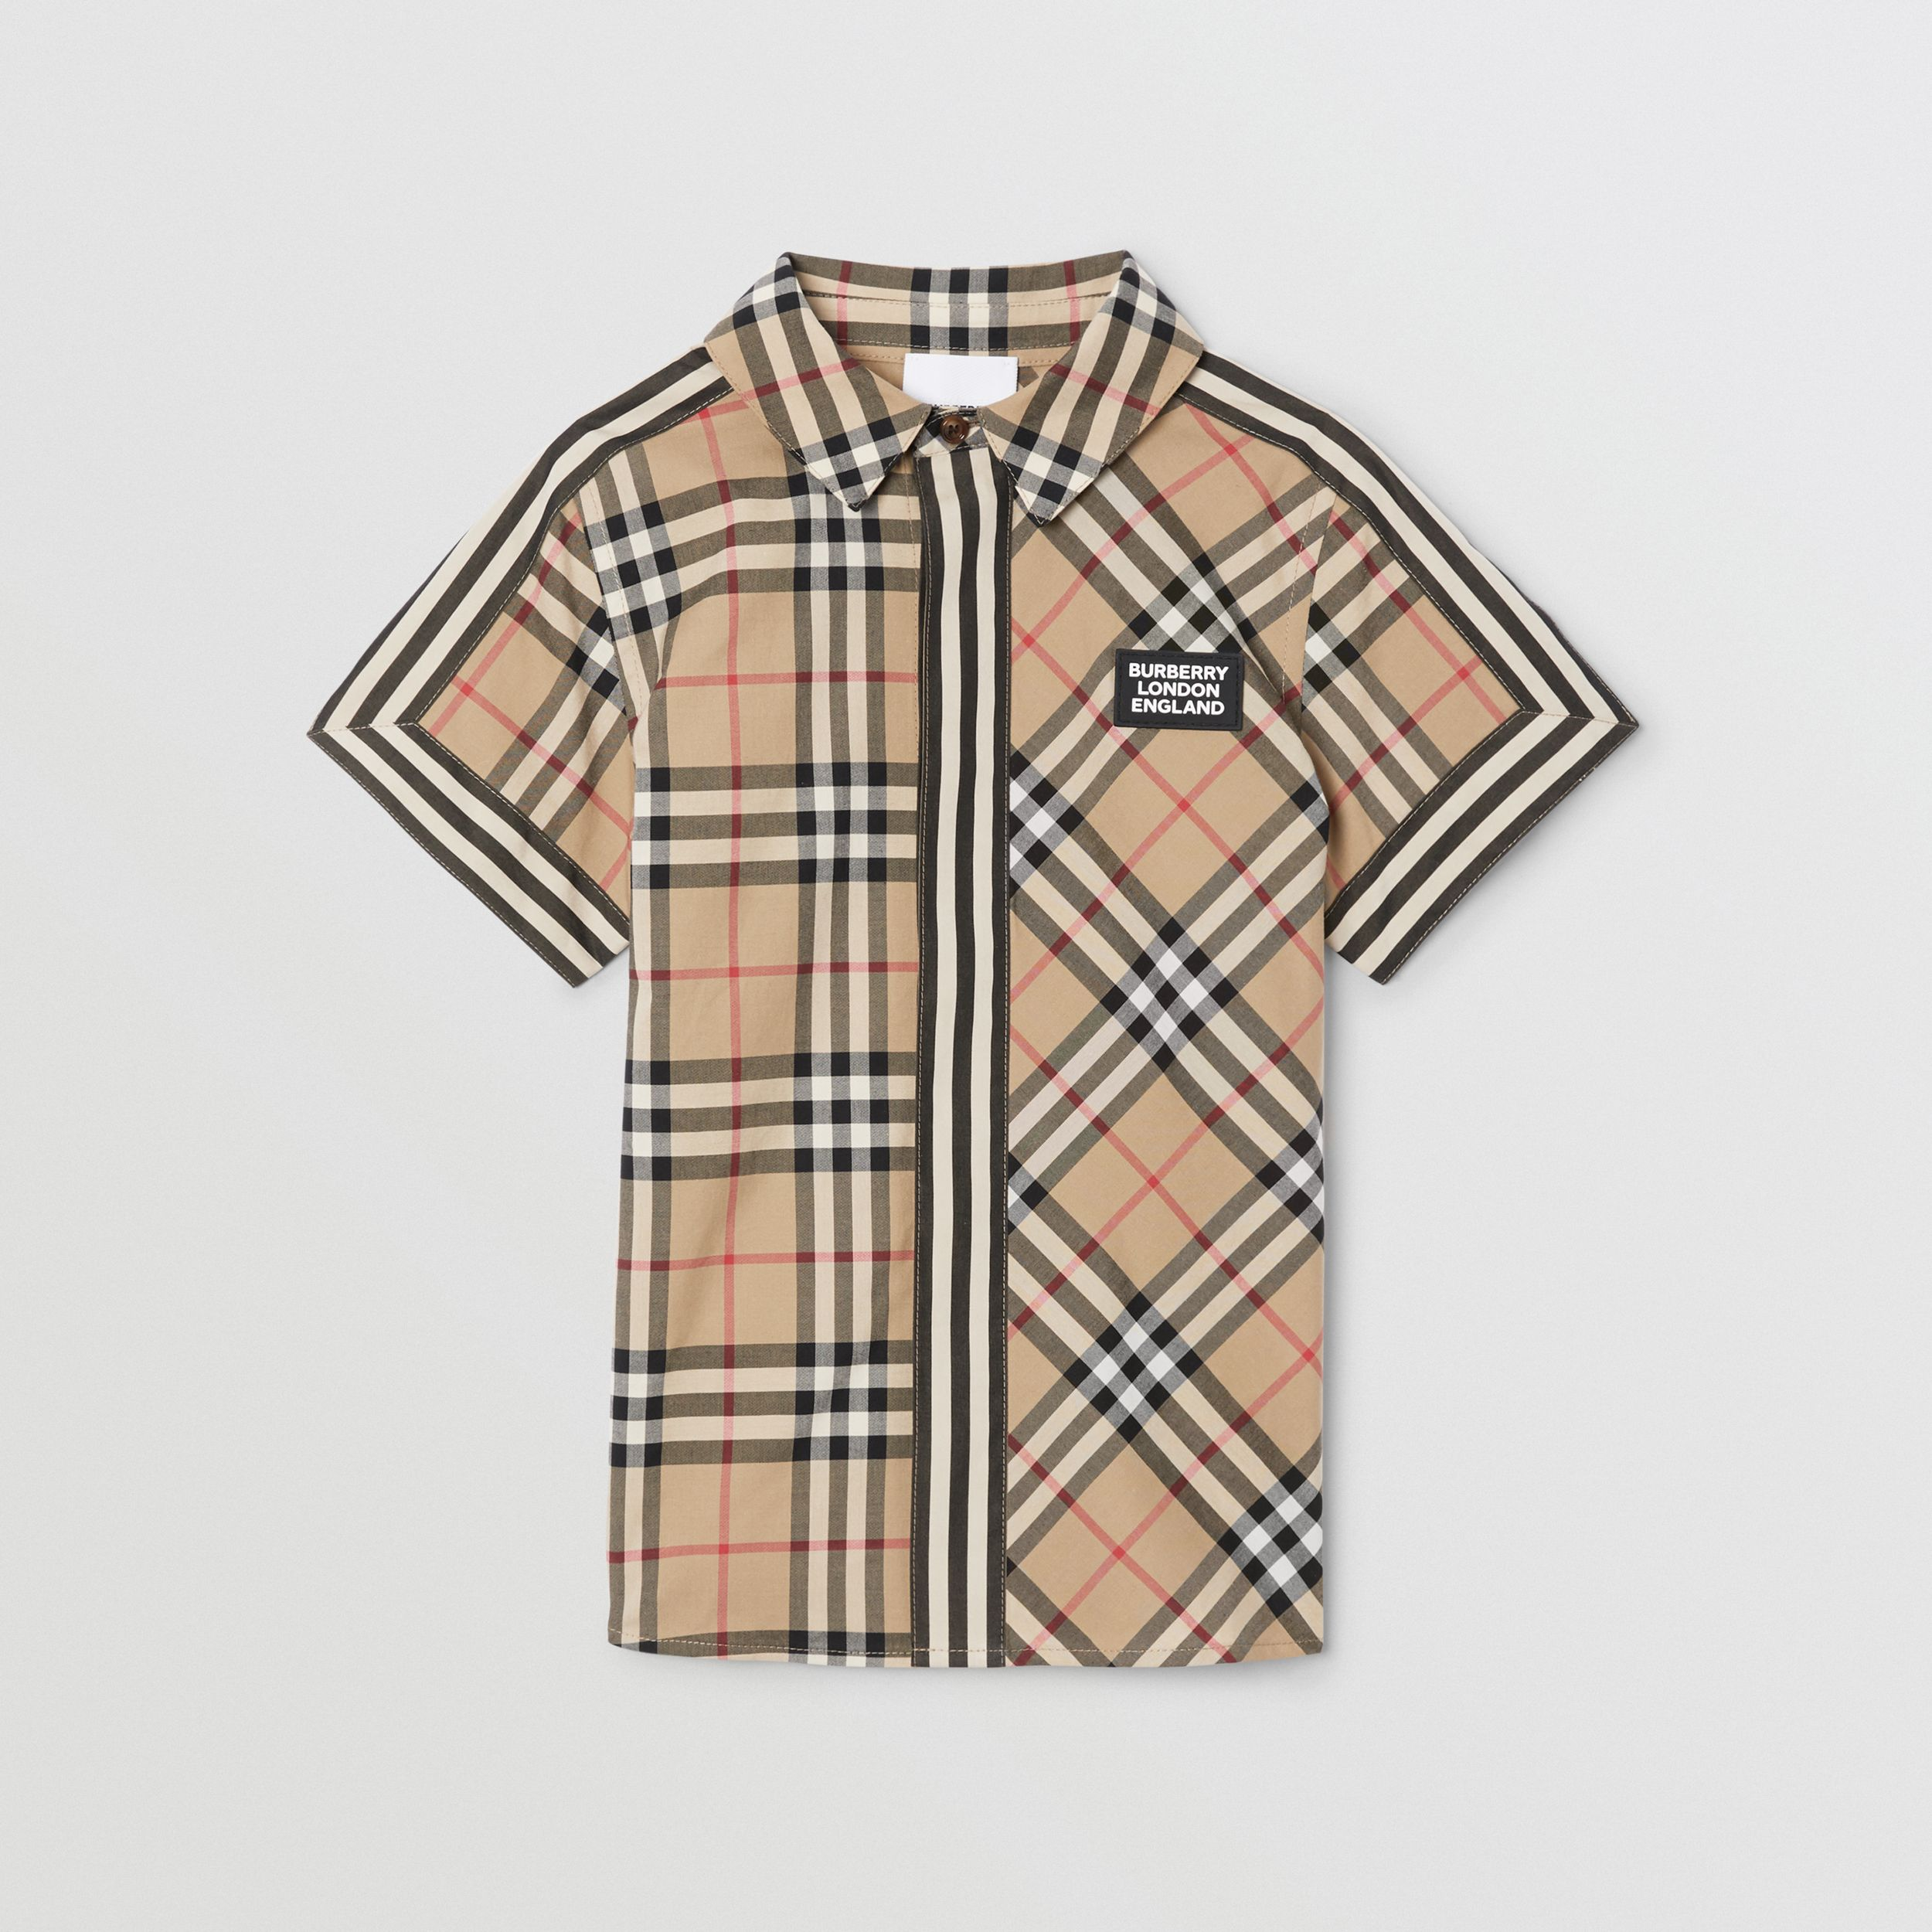 Short-sleeve Vintage Check Patchwork Cotton Shirt in Archive Beige | Burberry - 1